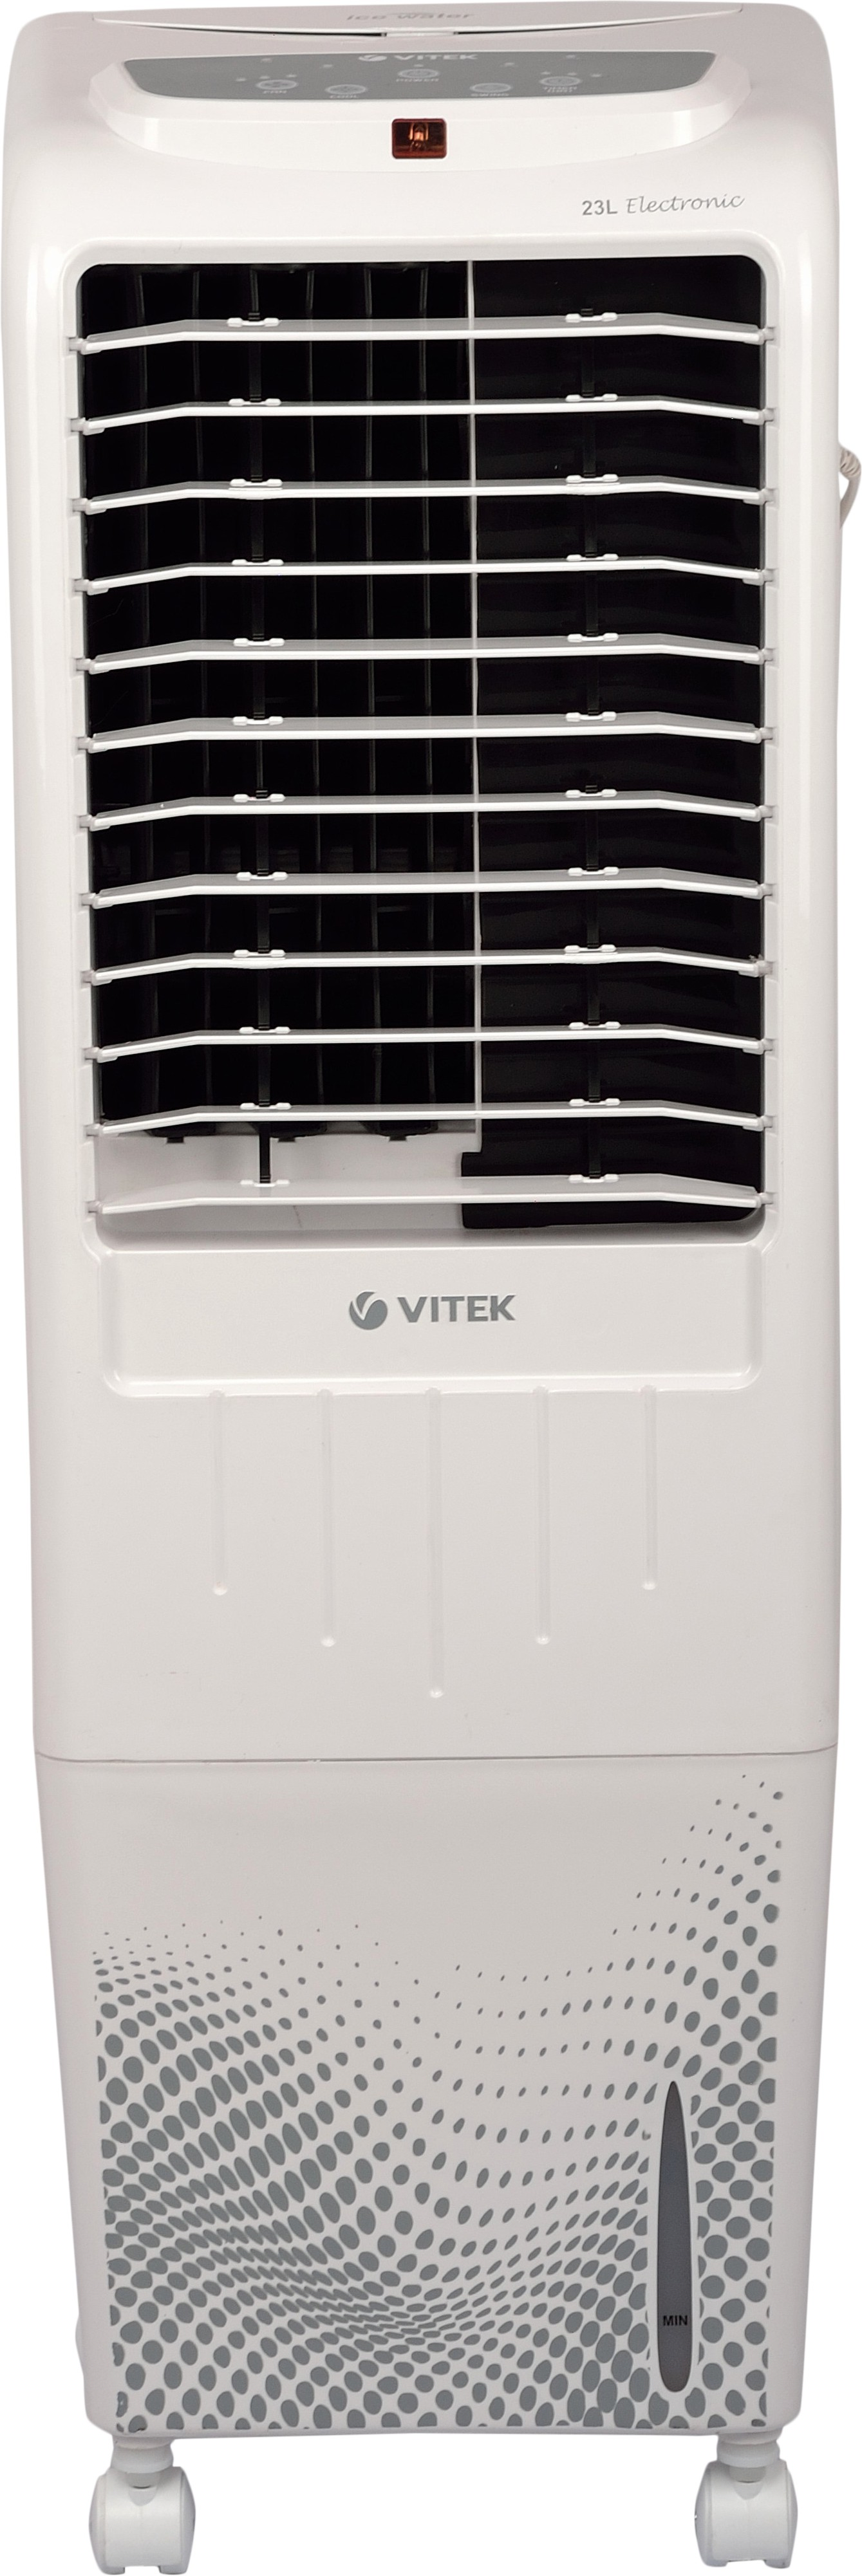 View VITEK Tower Cooler 23 L (With Remote) Tower Air Cooler(White, 23 Litres) Price Online(VITEK)